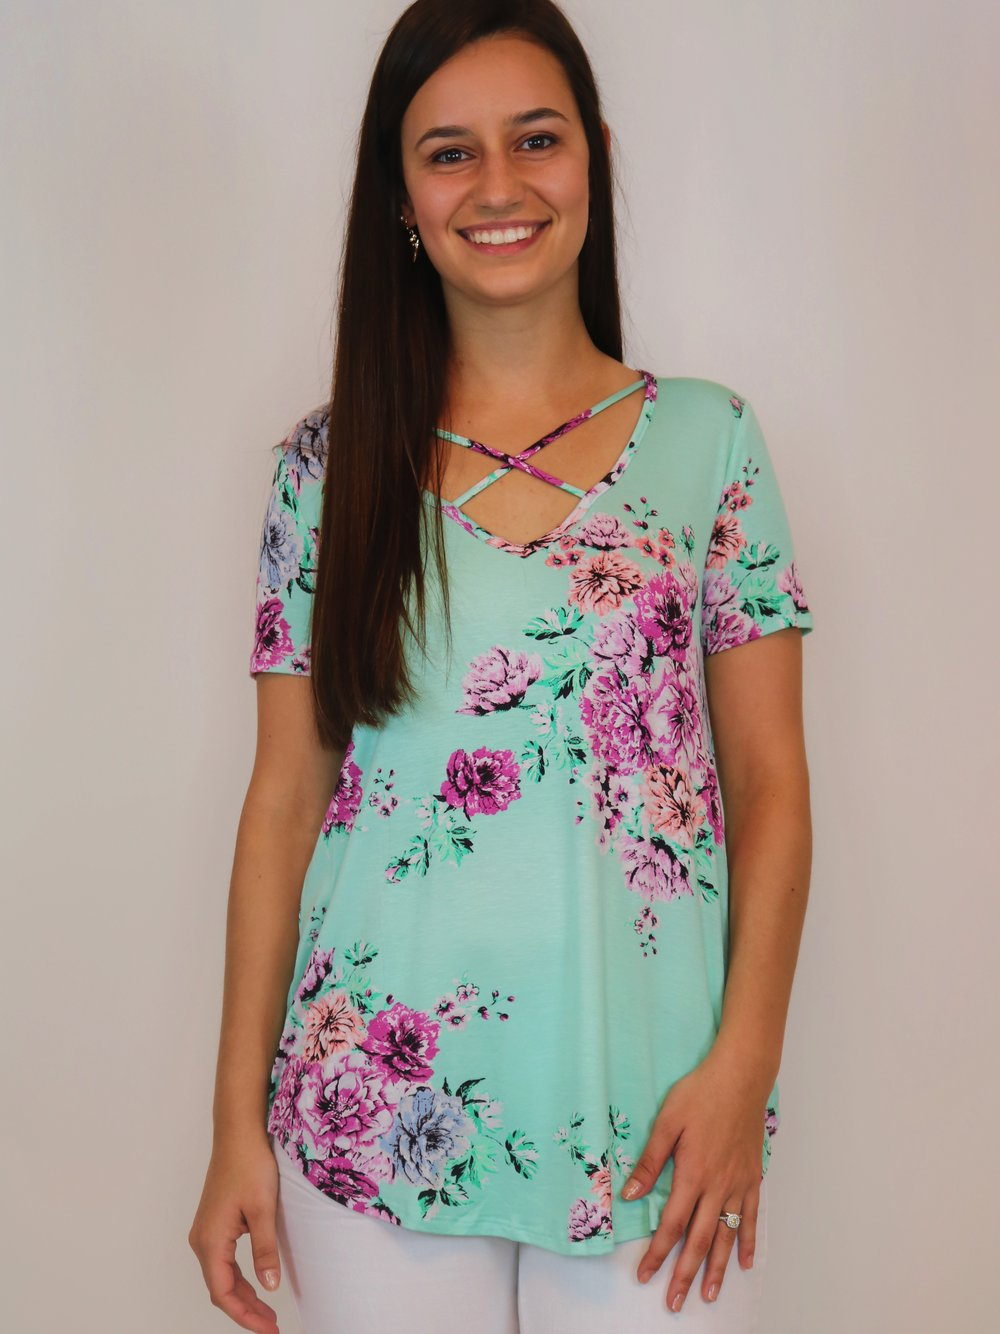 Cool Breeze Mint Floral Top